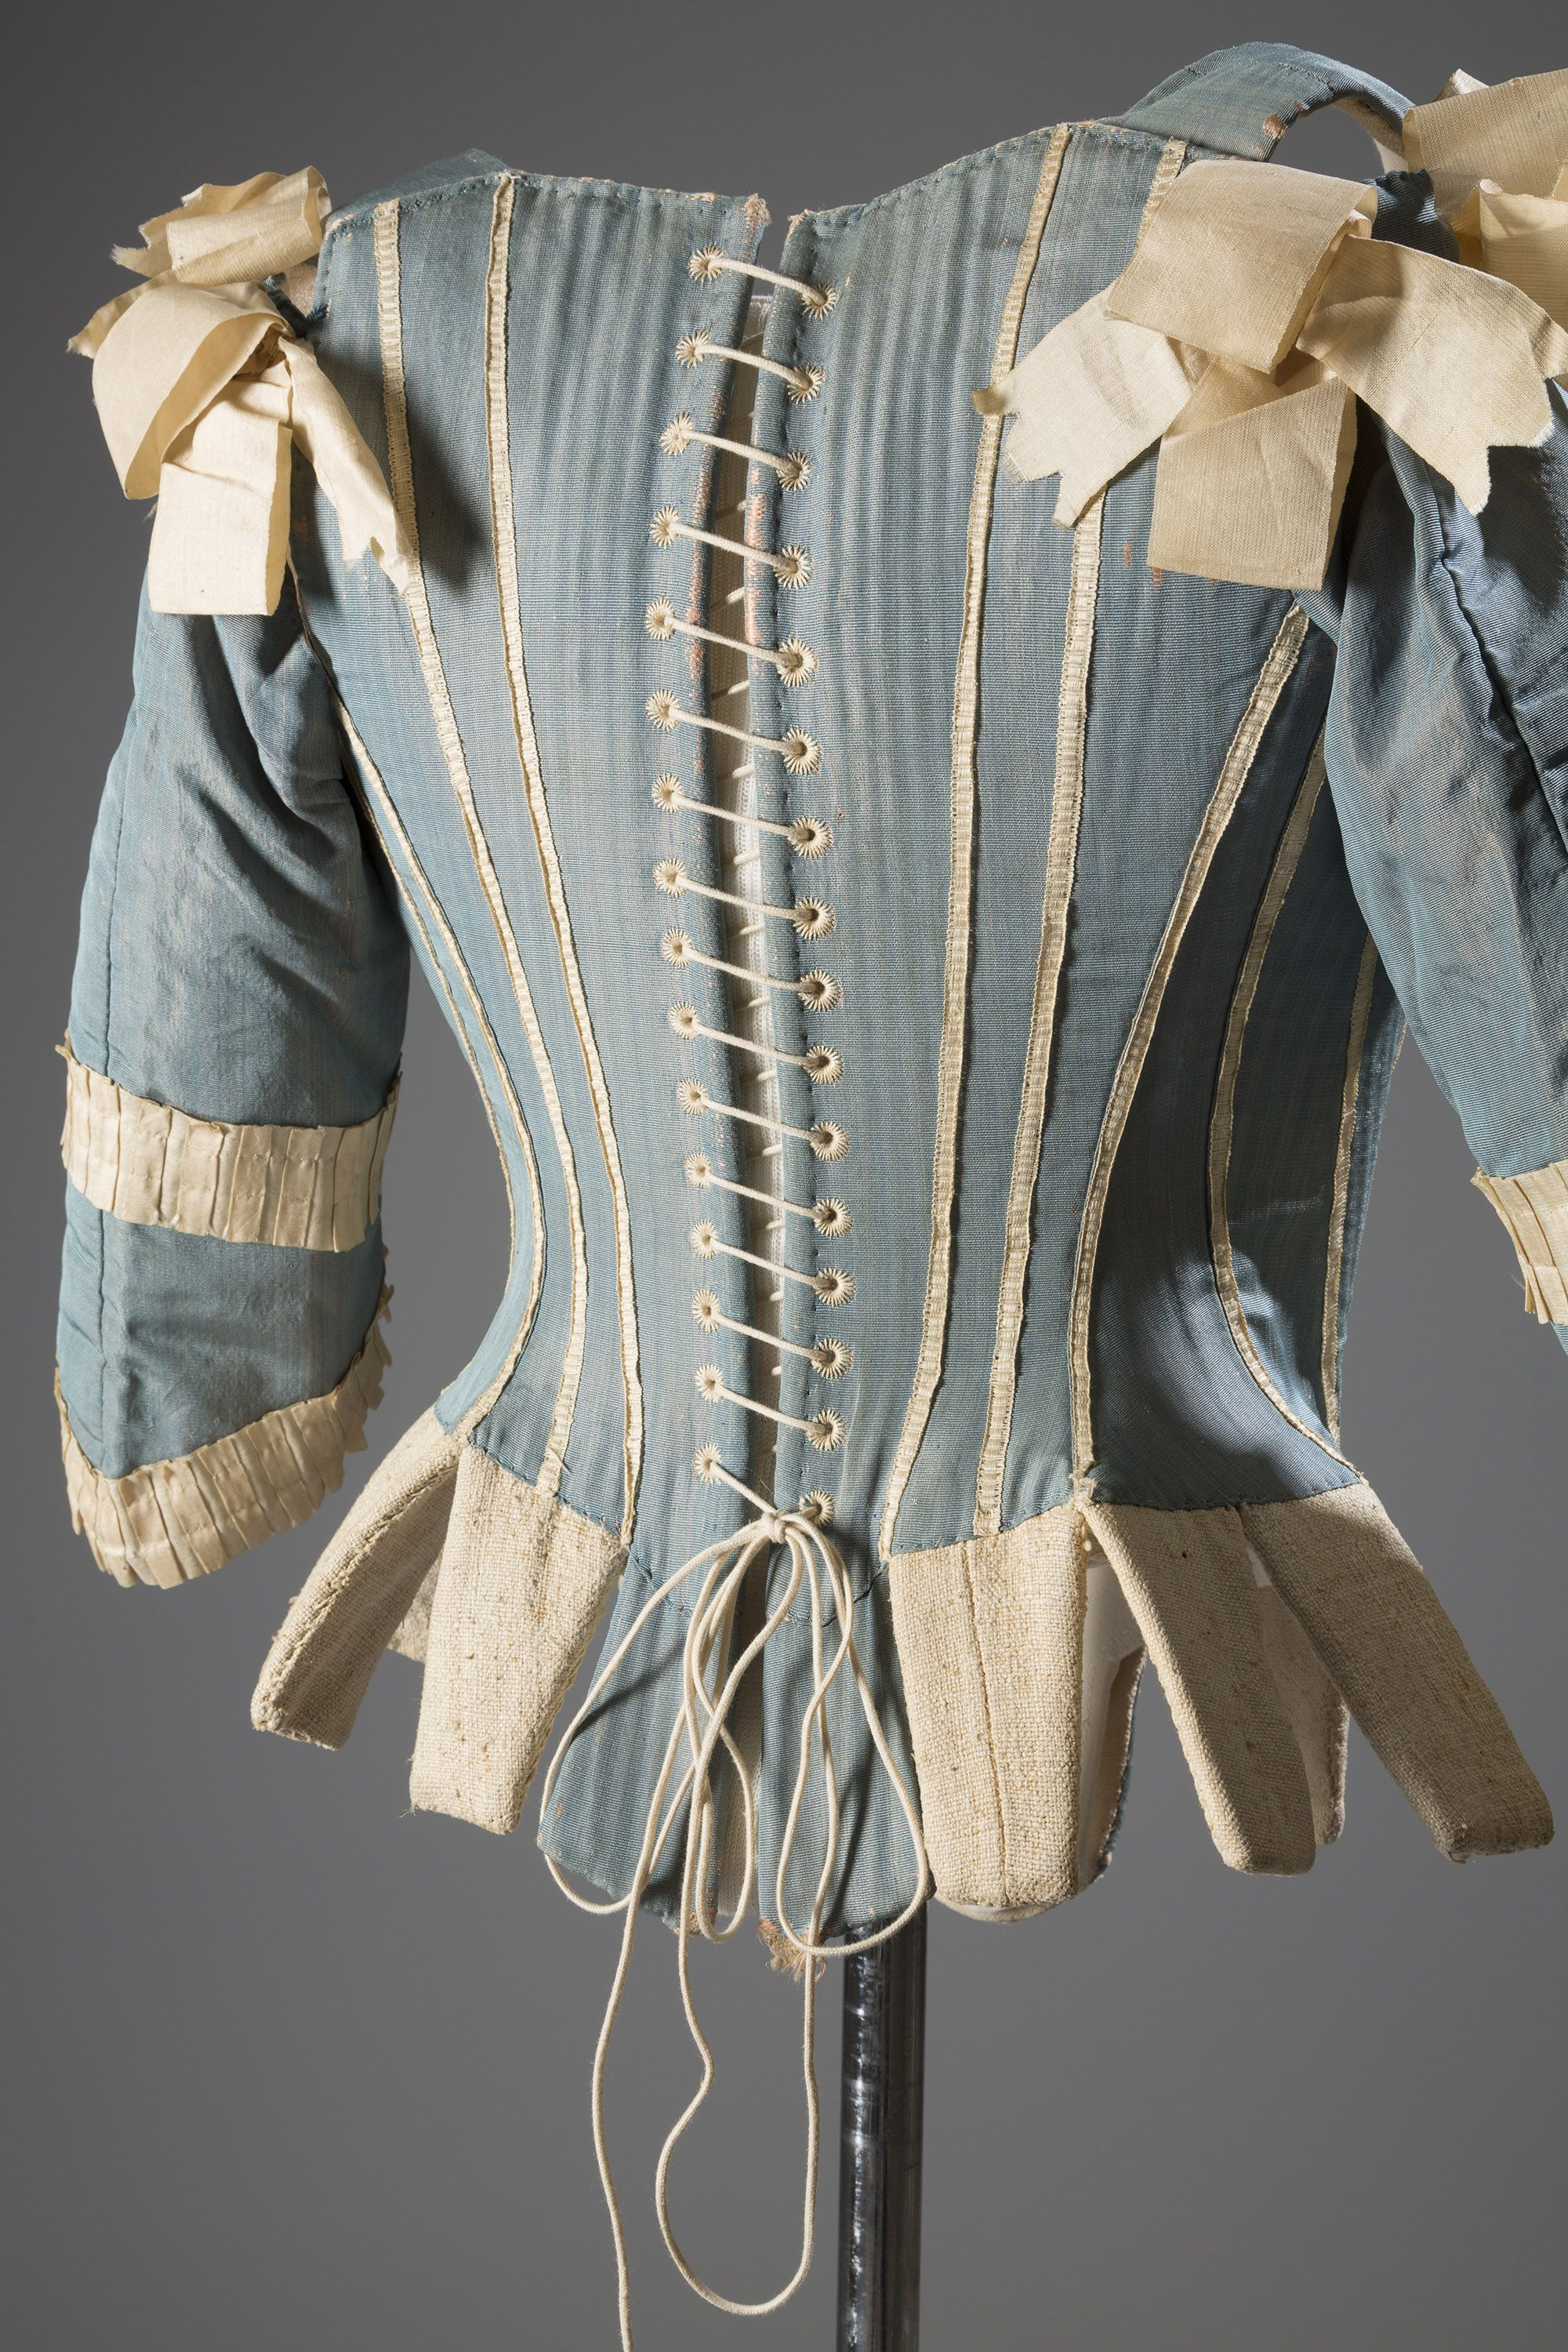 """Stays—otherwise known as whalebone corsets—were everyday wardrobe staples for """"proper"""" women of the eighteenth century. Yes, these undergarments don't look like the sexy bustier-corsets of today, but they were essential in molding&nbsp&#x3B;the ideal body form: a tiny waist and pushed-up breasts. As Colleen Hill notes&nbsp&#x3B;in <em><a href=""""http://www.amazon.com/Exposed-History-Lingerie-Colleen-Hill/dp/0300208863"""">Exposed: A History of Lingerie</a></em>, the French ceremonial ritual of the <em>toilette</em>, a morning routine of&nbsp&#x3B;undressing and dressing in front of the court, involved putting on a stay. Women performing the <em>toilette</em> would linger on the undergarments, hinting at the sexual intimacy and voyeurism involved.<em>Corset (Stays)/Silk, Silk Ribbon, Whalebone, ca.1770, Possibly Europe</em><!--EndFragment--><!--EndFragment-->"""